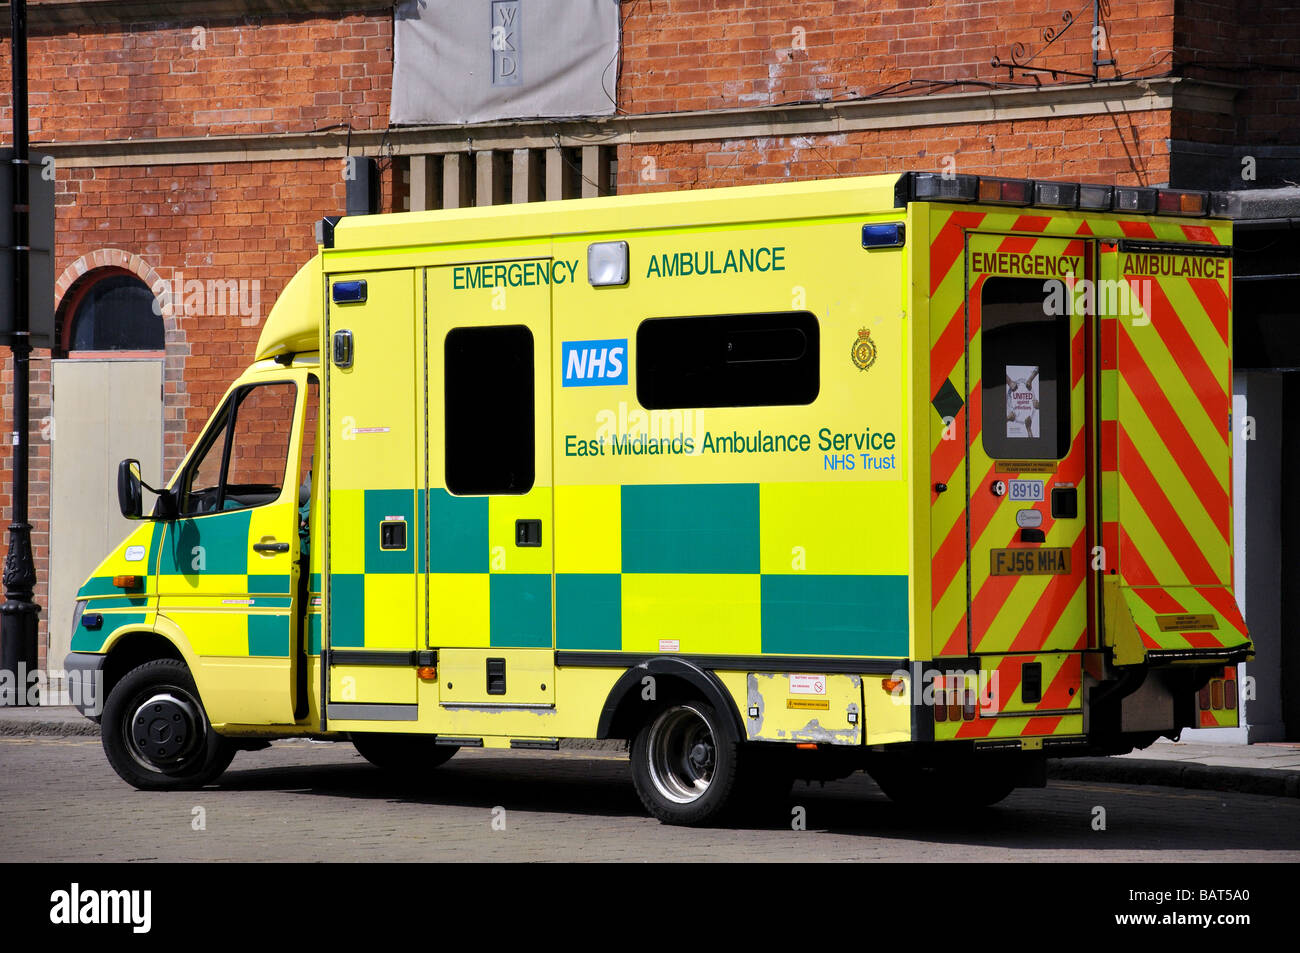 NHS East Midlands Ambulance, Ryknold Square, Chesterfield, Derbyshire, England, United Kingdom - Stock Image